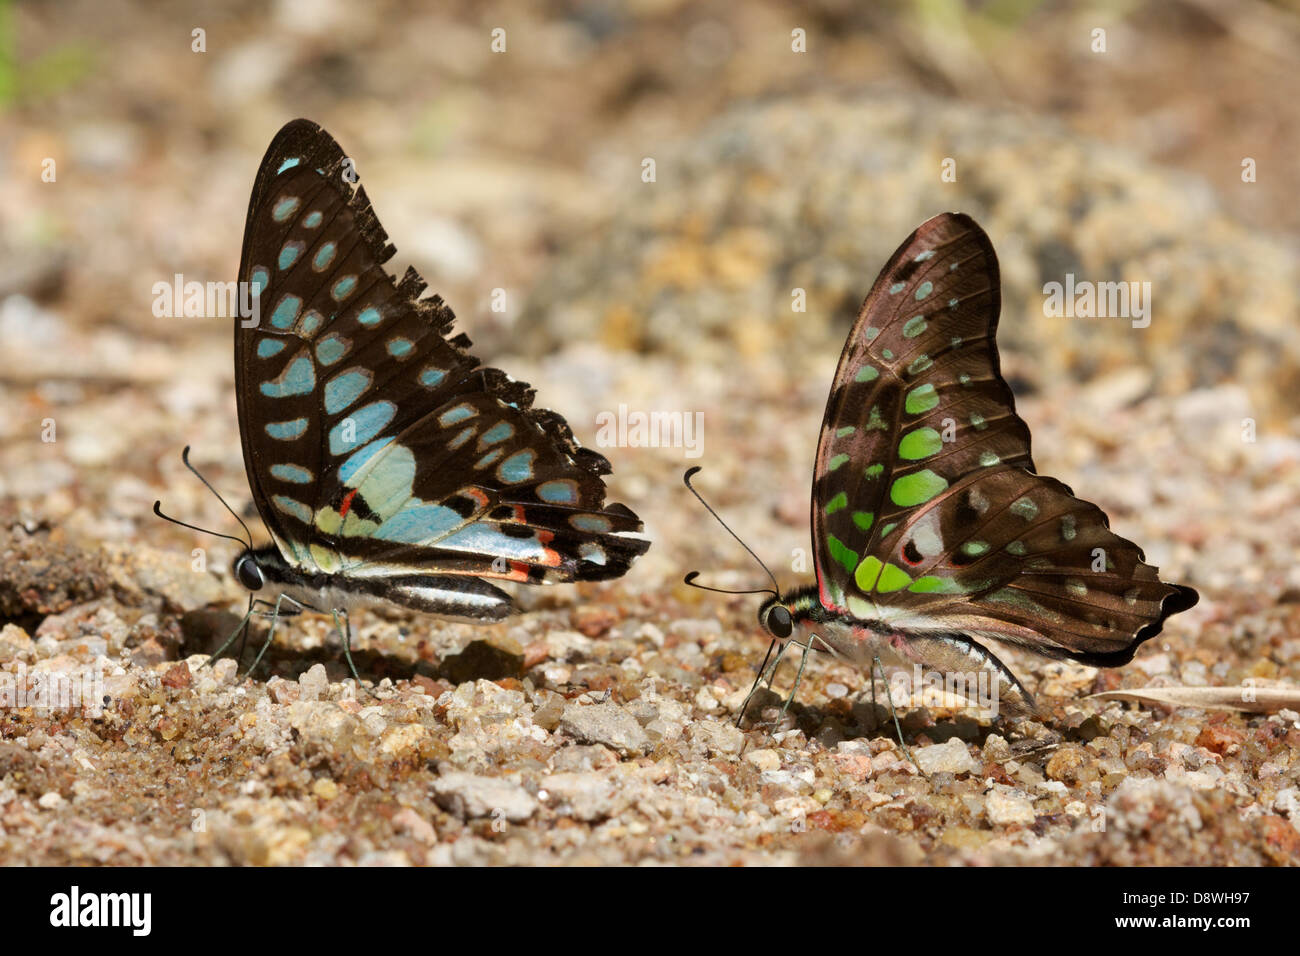 The Common Jay (Graphium doson evemonides) and The Tailed Jay (Graphium agamemnon agamemnon) - Stock Image